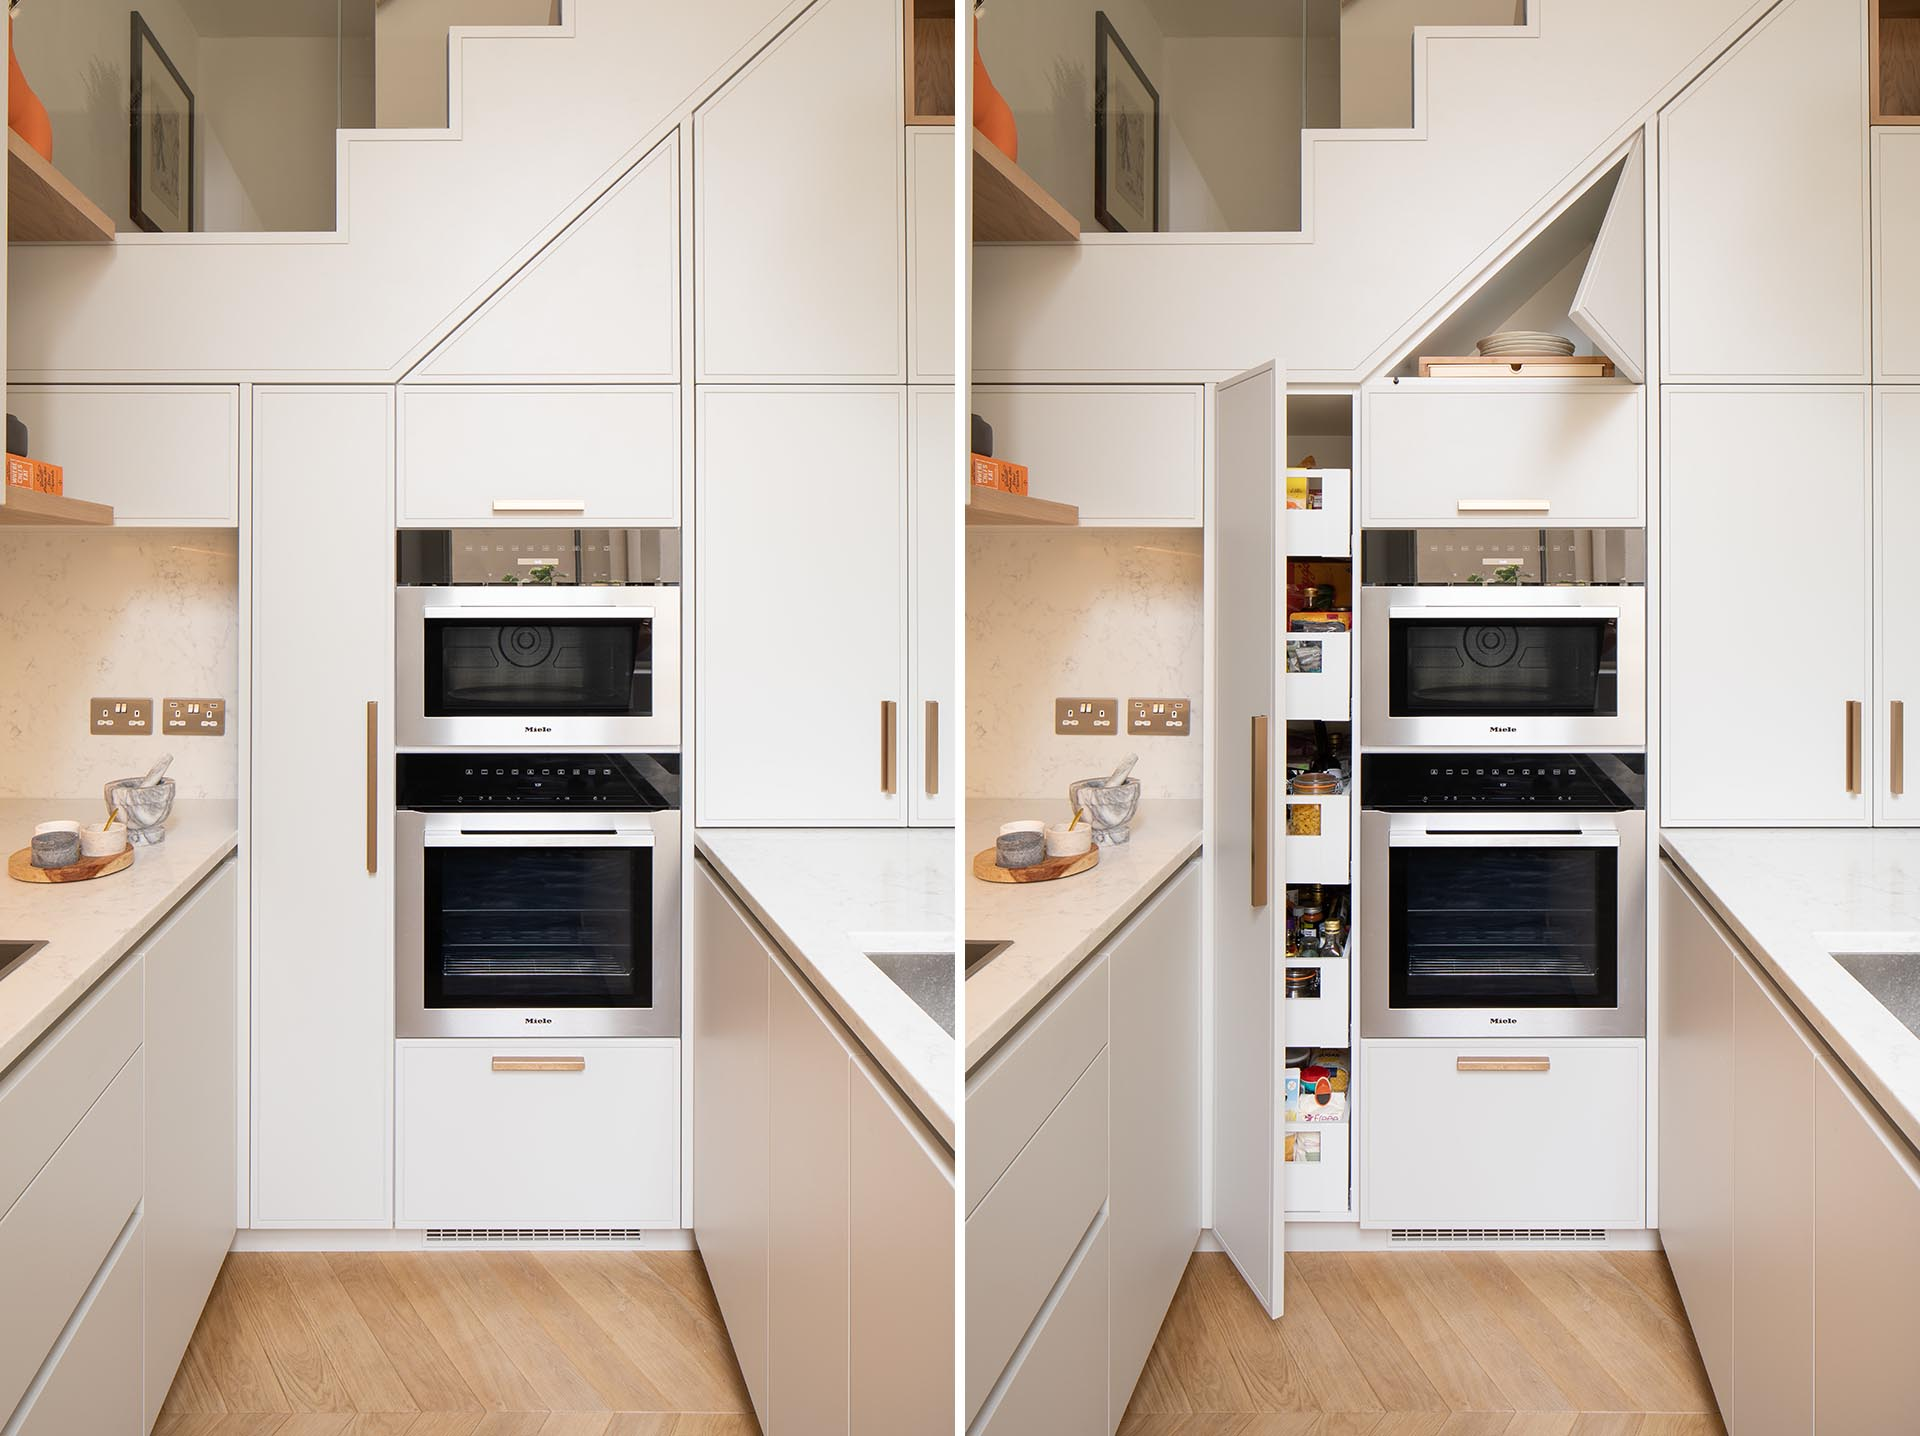 A tall storage cabinet with pull-out drawers next to the ovens, while above there's a triangular cabinet that provides even more storage.